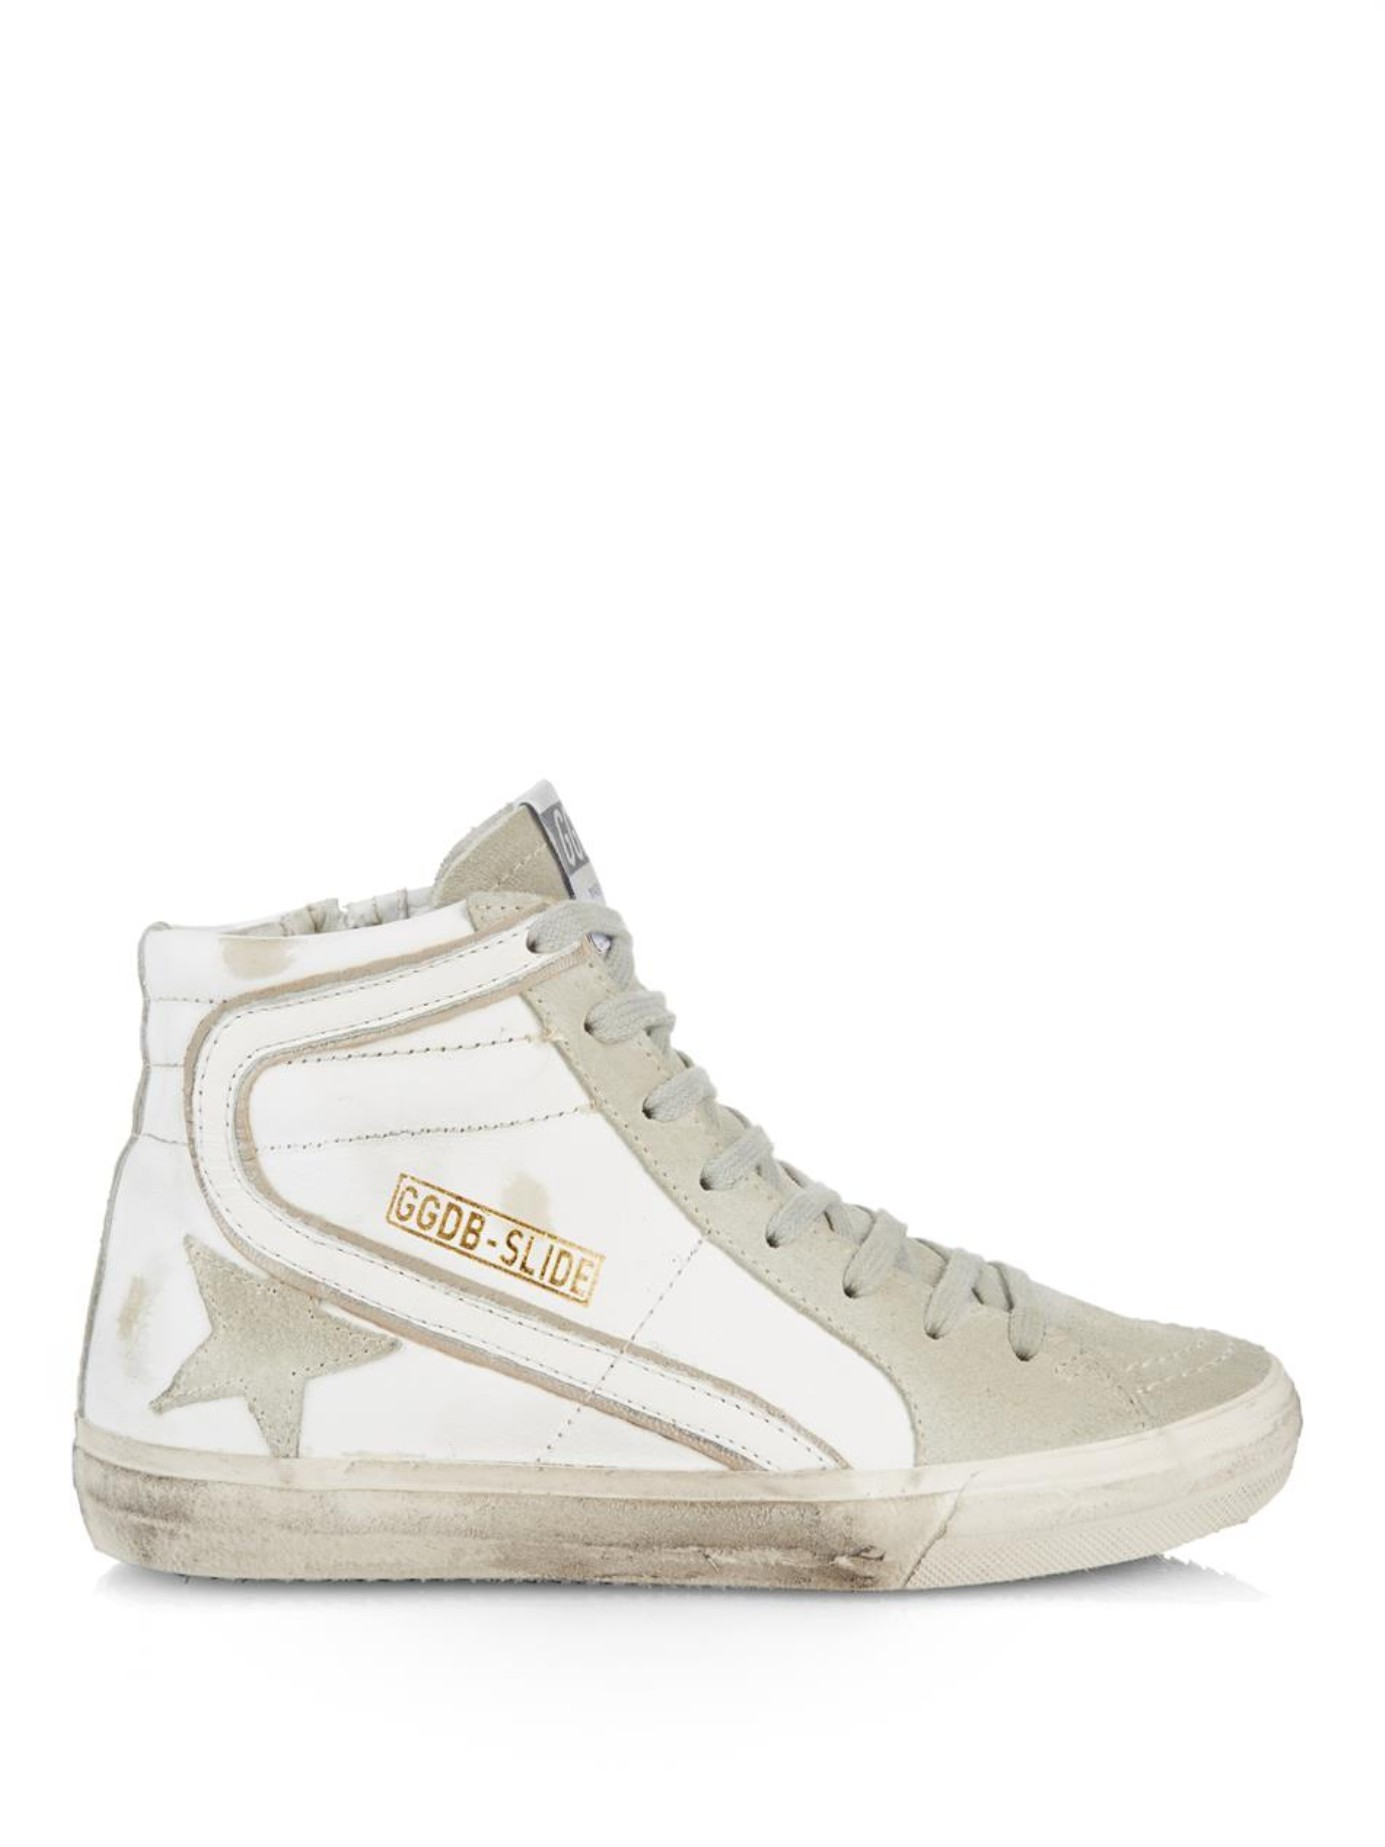 e9a28d0d8b79 Lyst - Golden Goose Deluxe Brand Slide High-Top Leather Sneakers in ...